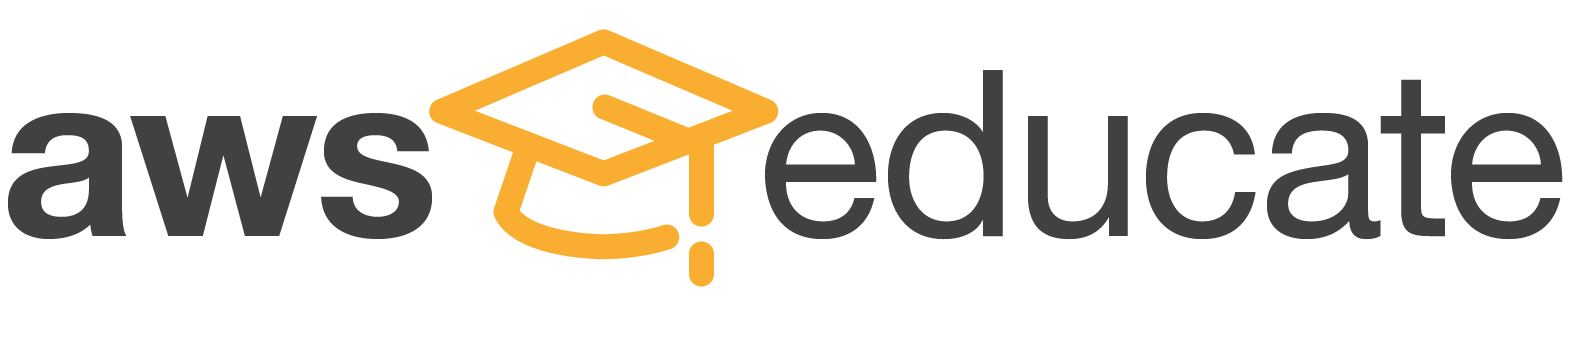 logo_aws-educate_light